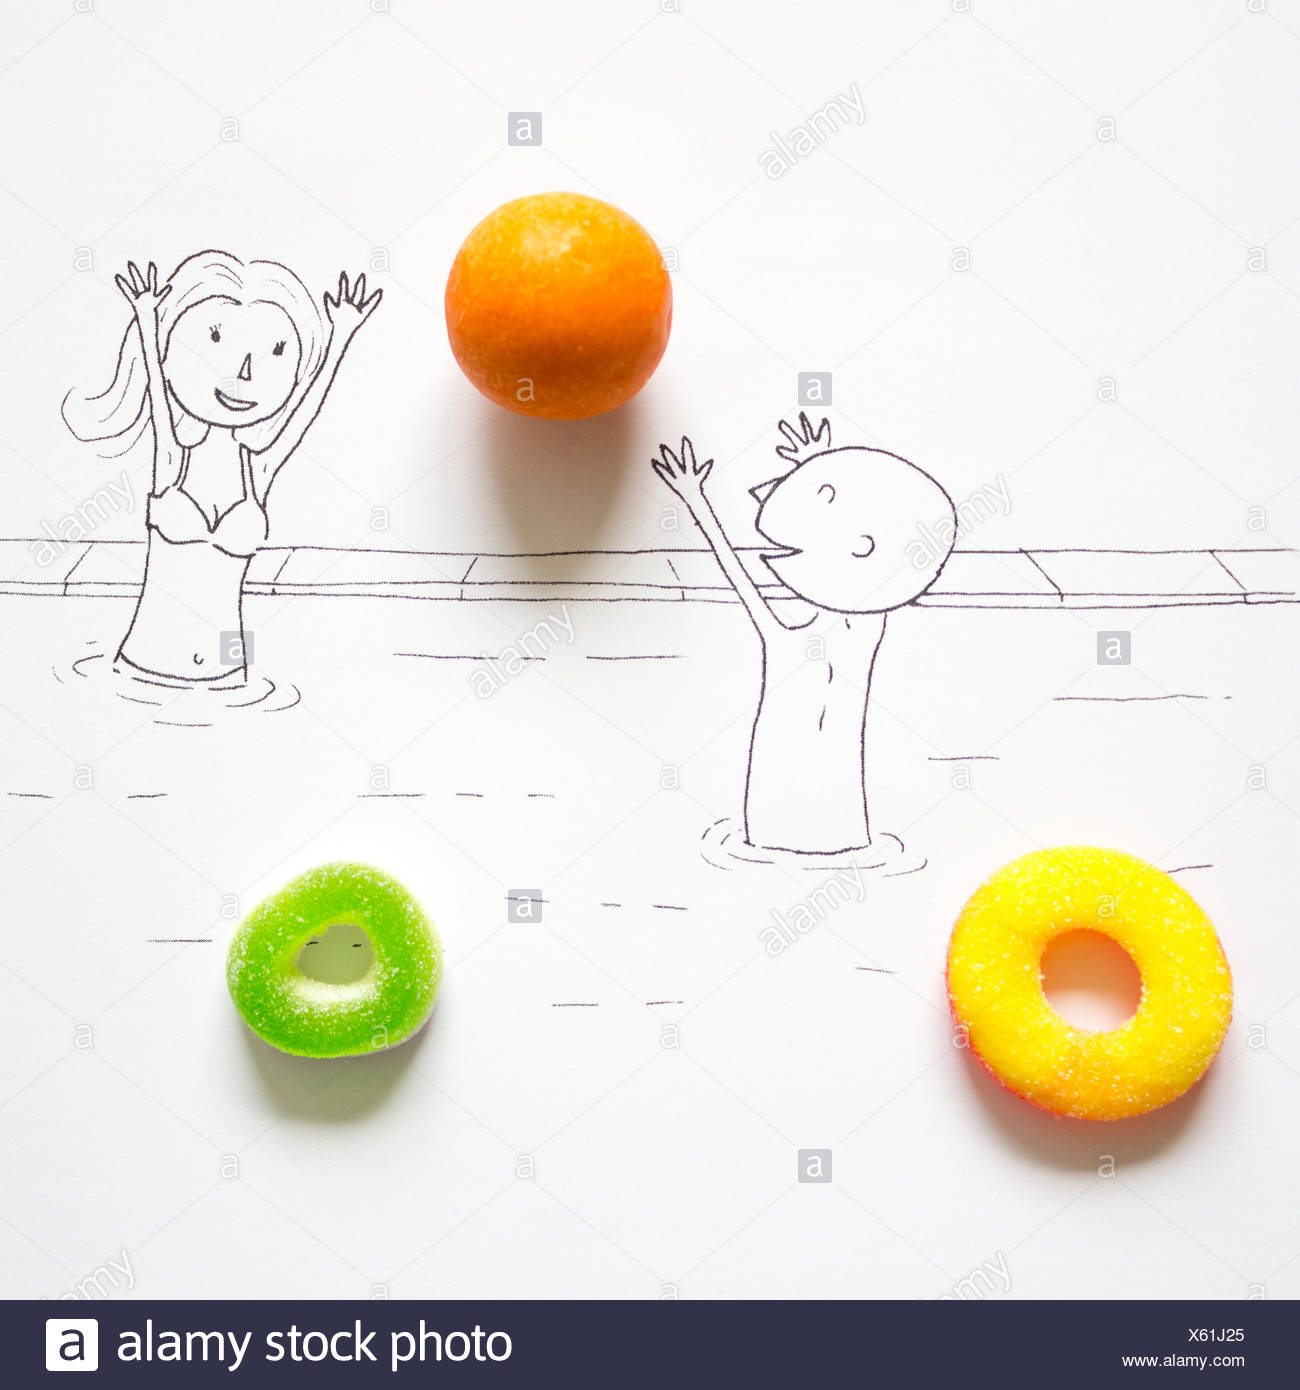 Conceptual drawing of a couple playing in a swimming pool - Stock Image